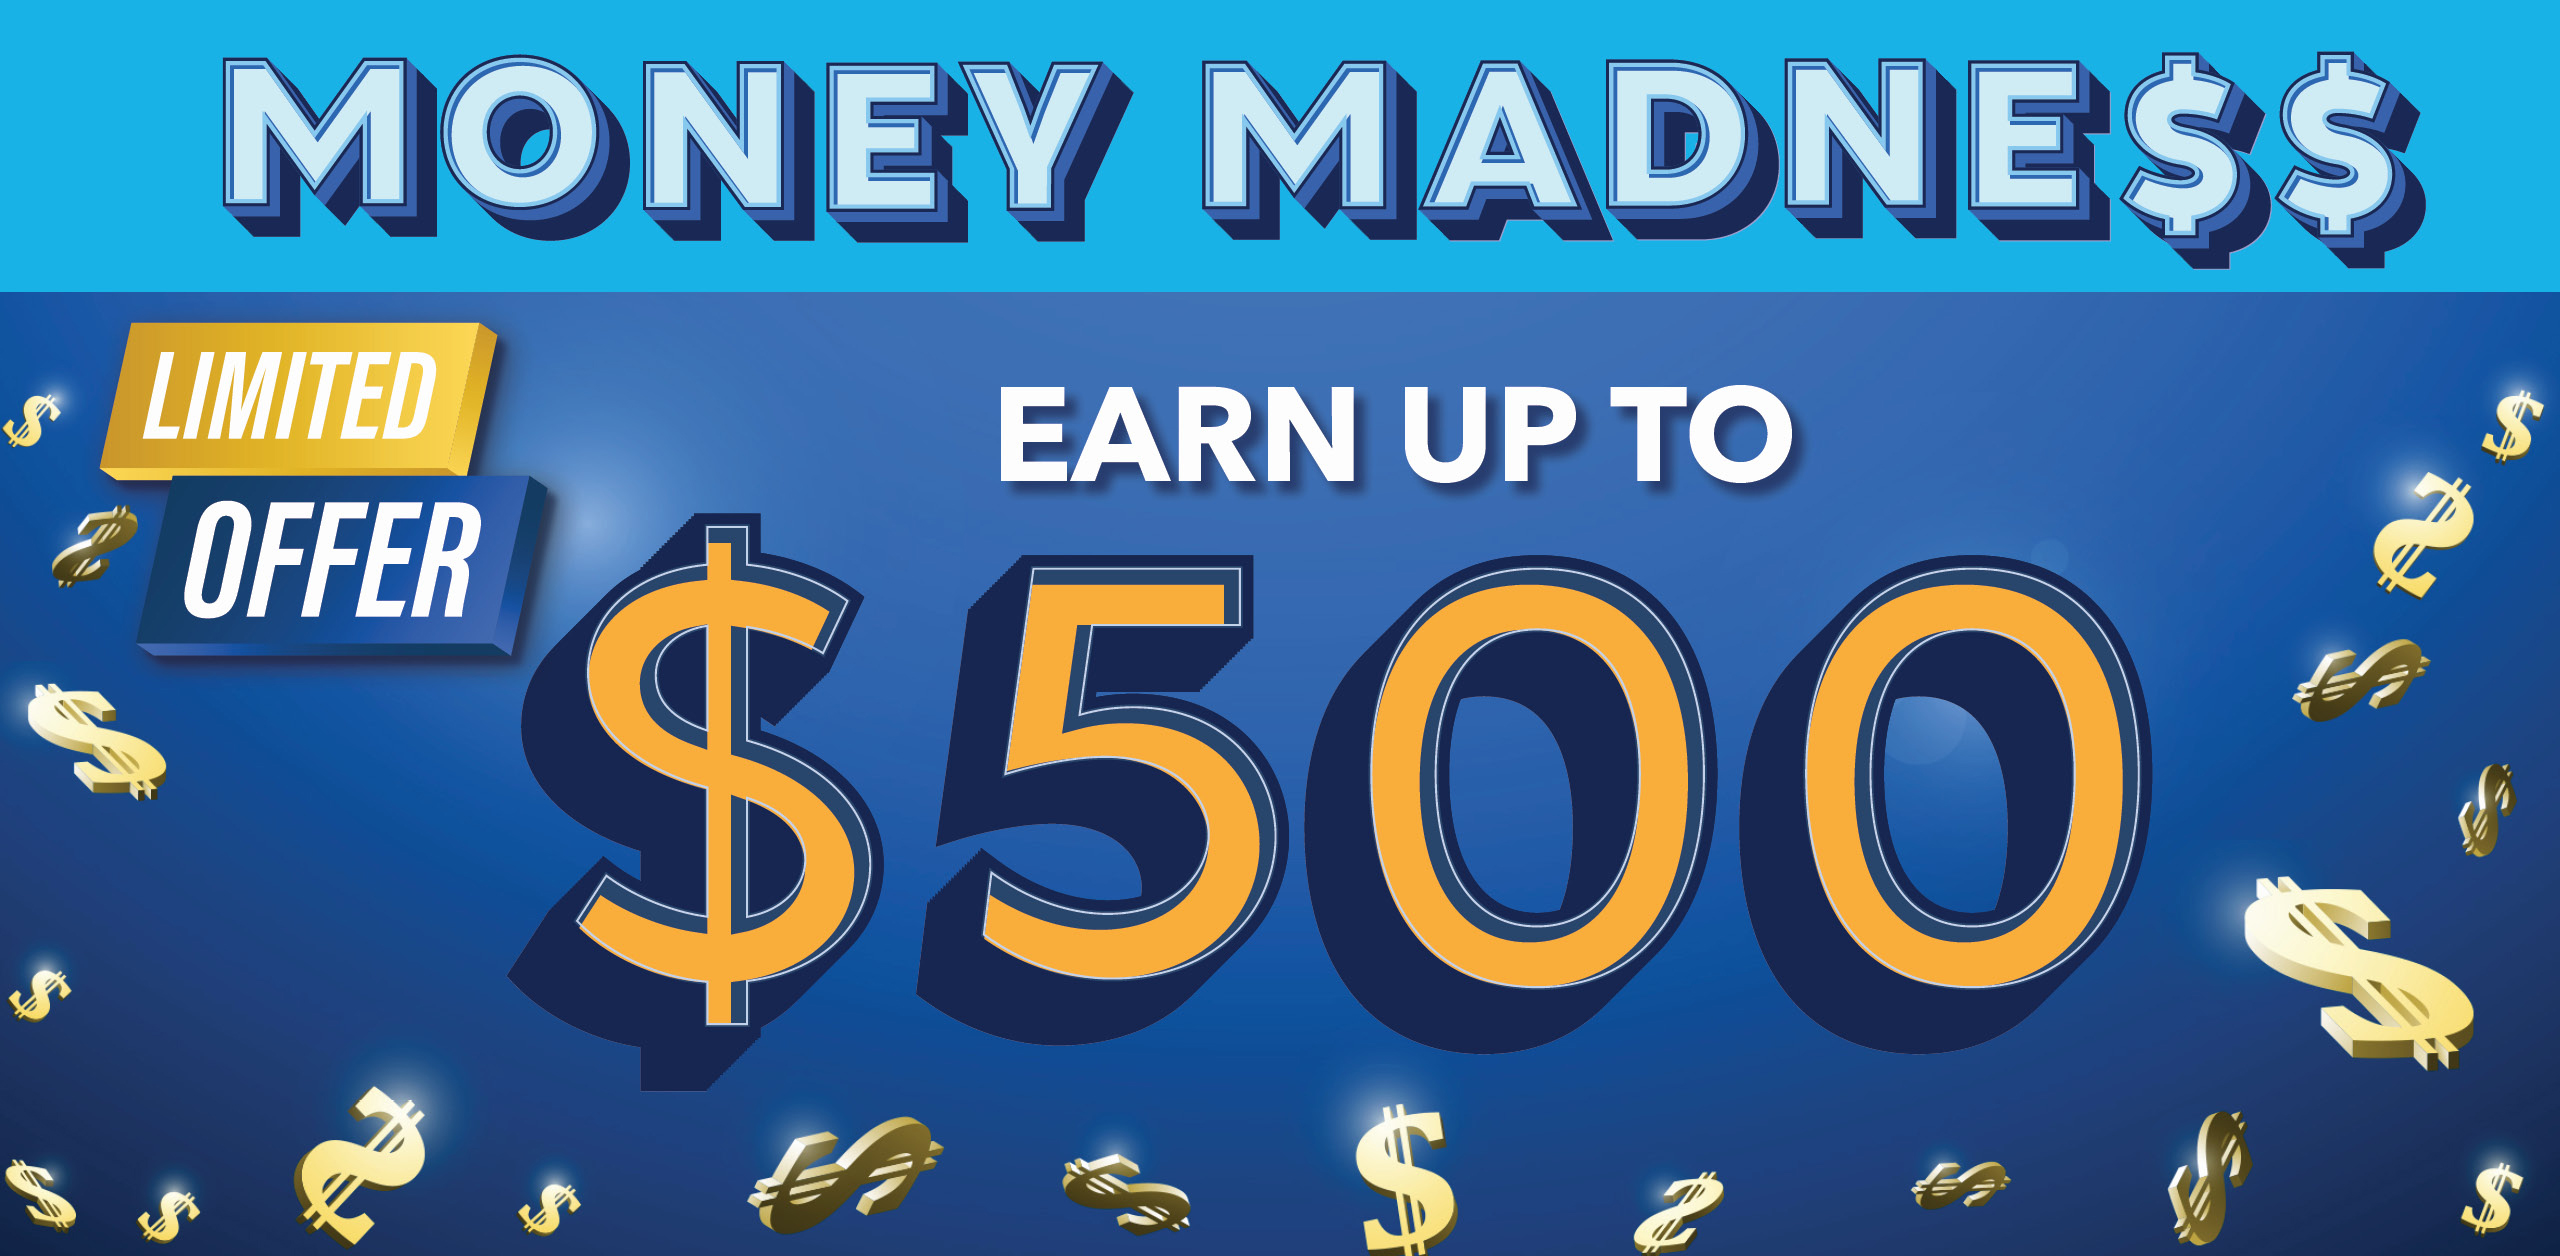 Money Madness Limited Time Offer - Earn Up To $500